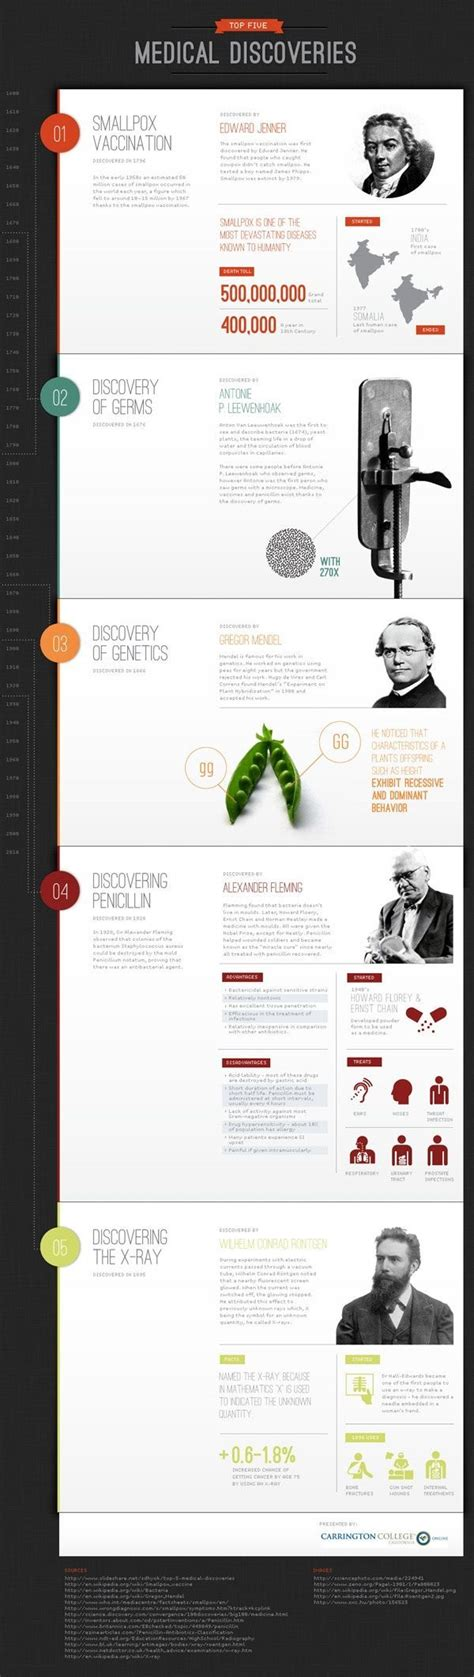 layout design rules for website 375 best images about portfolio layout on pinterest